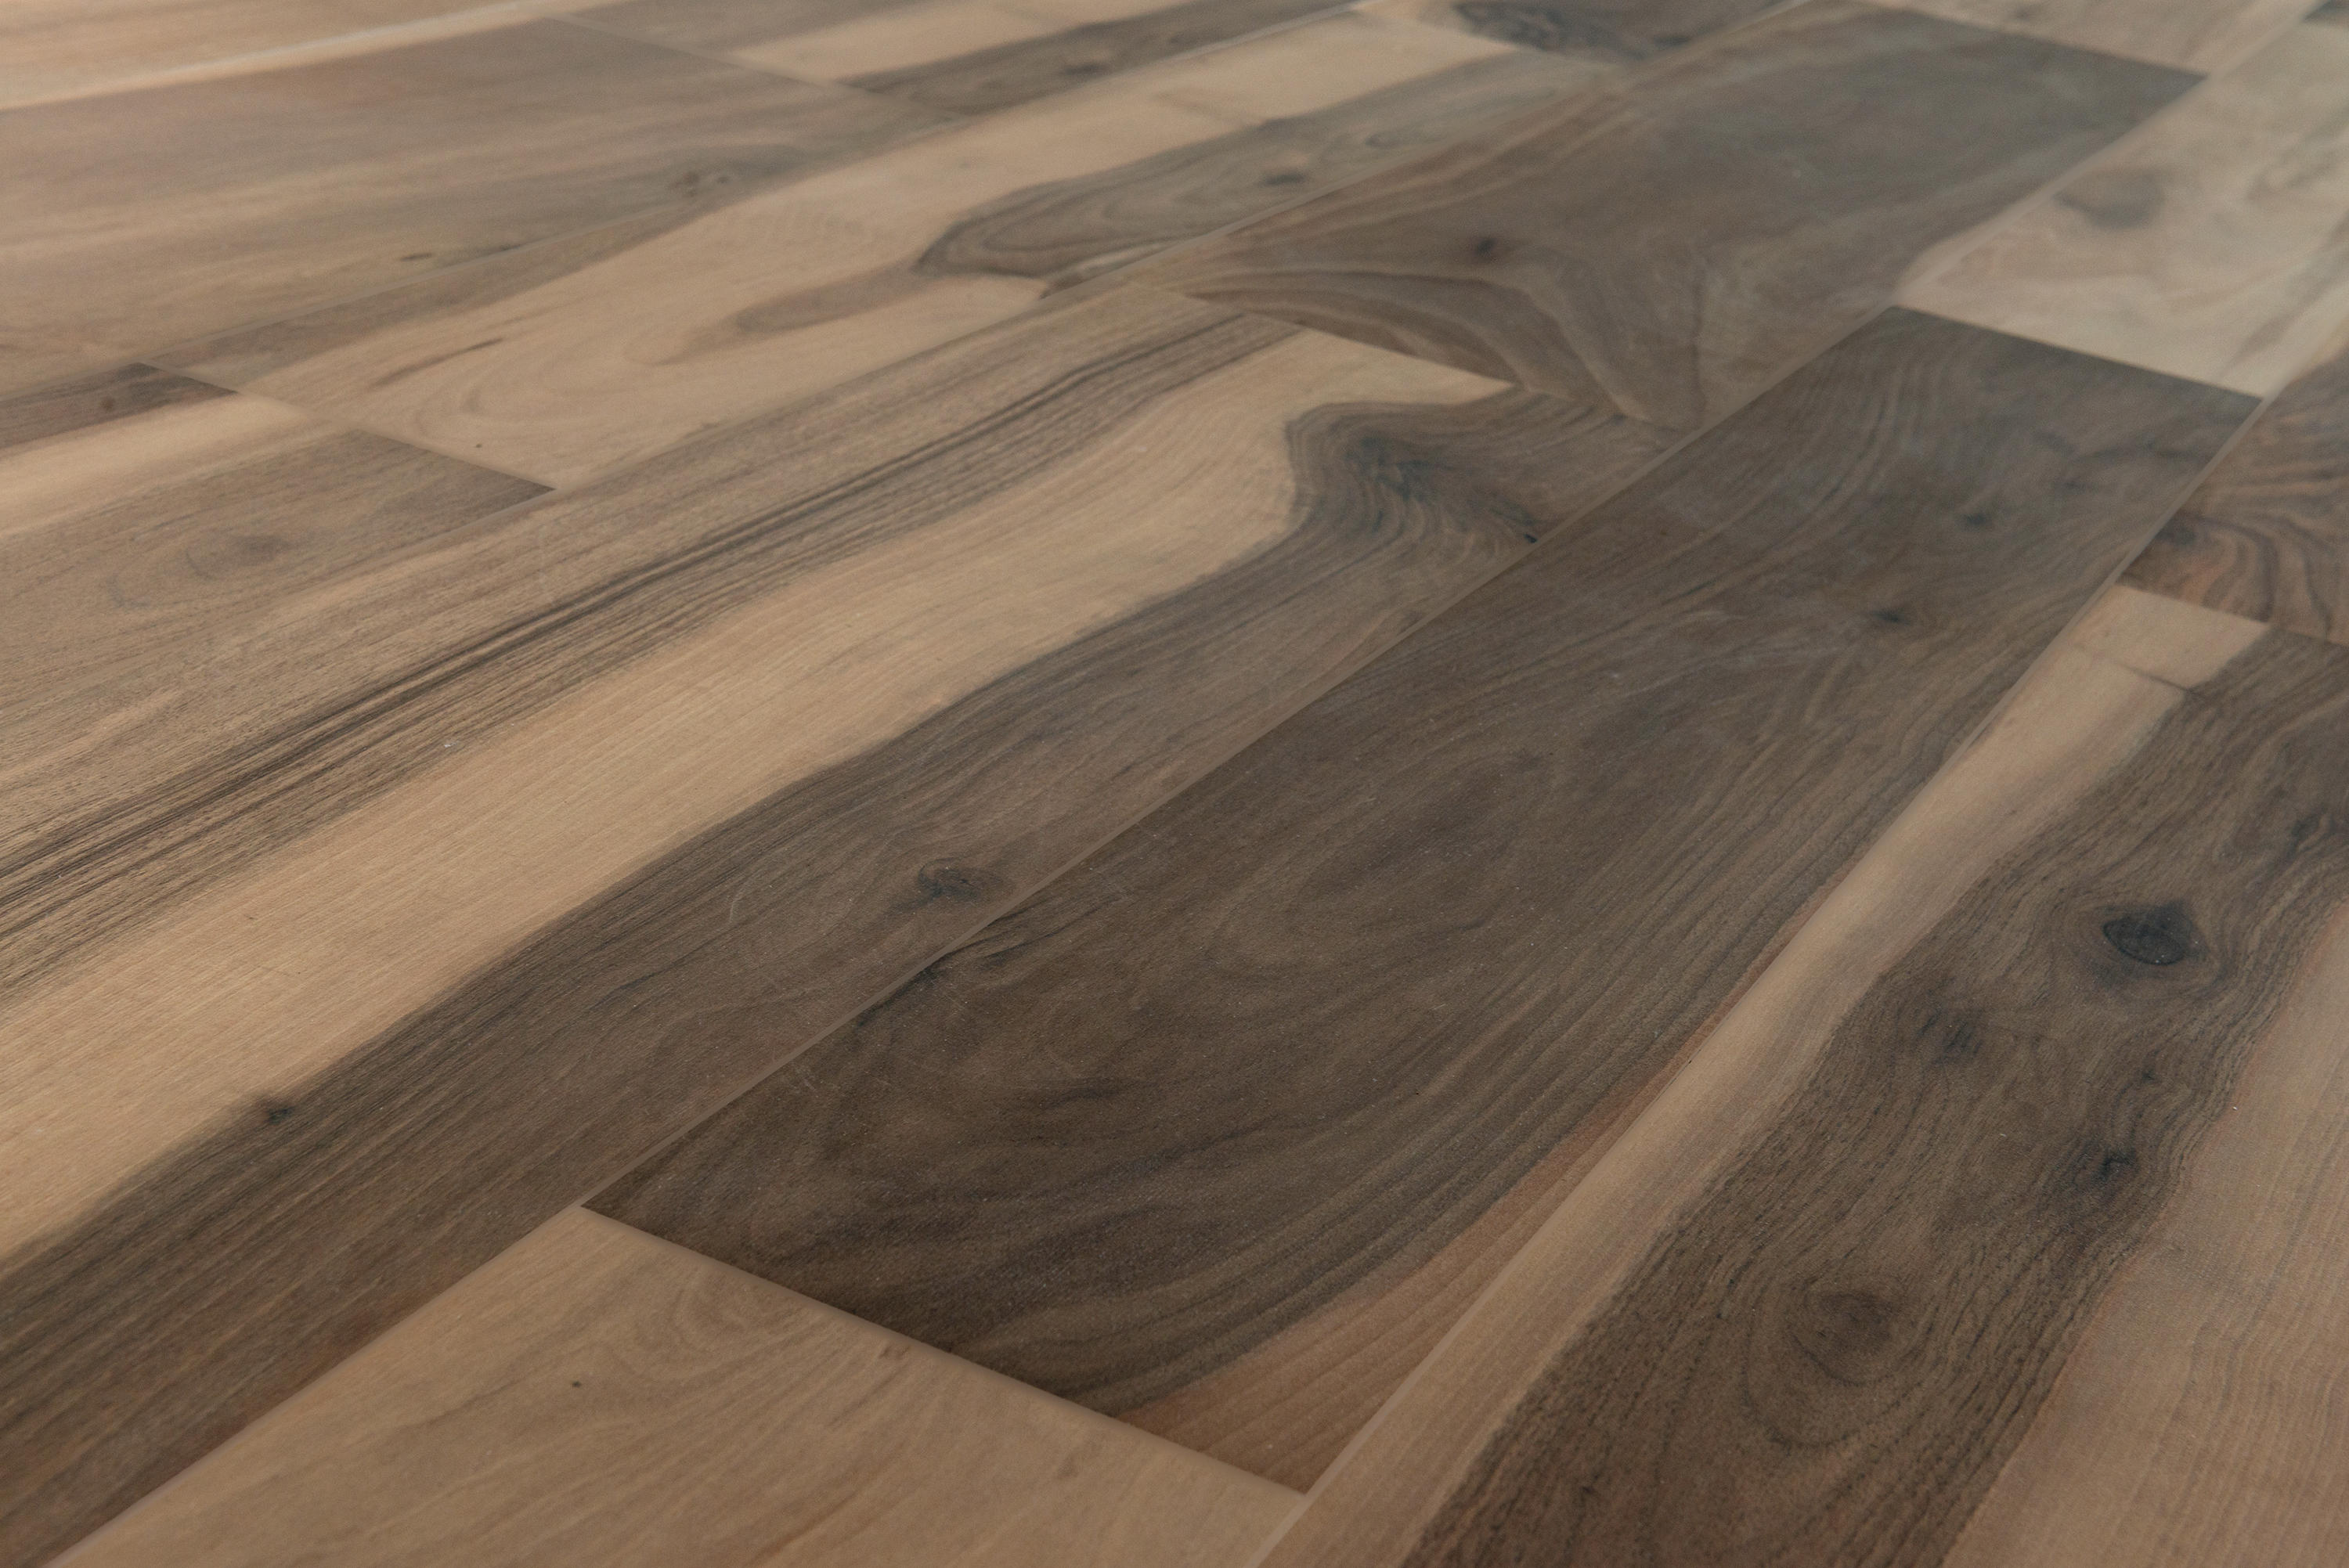 Millelegni Scottish Oak Ceramic Tiles From Emilgroup